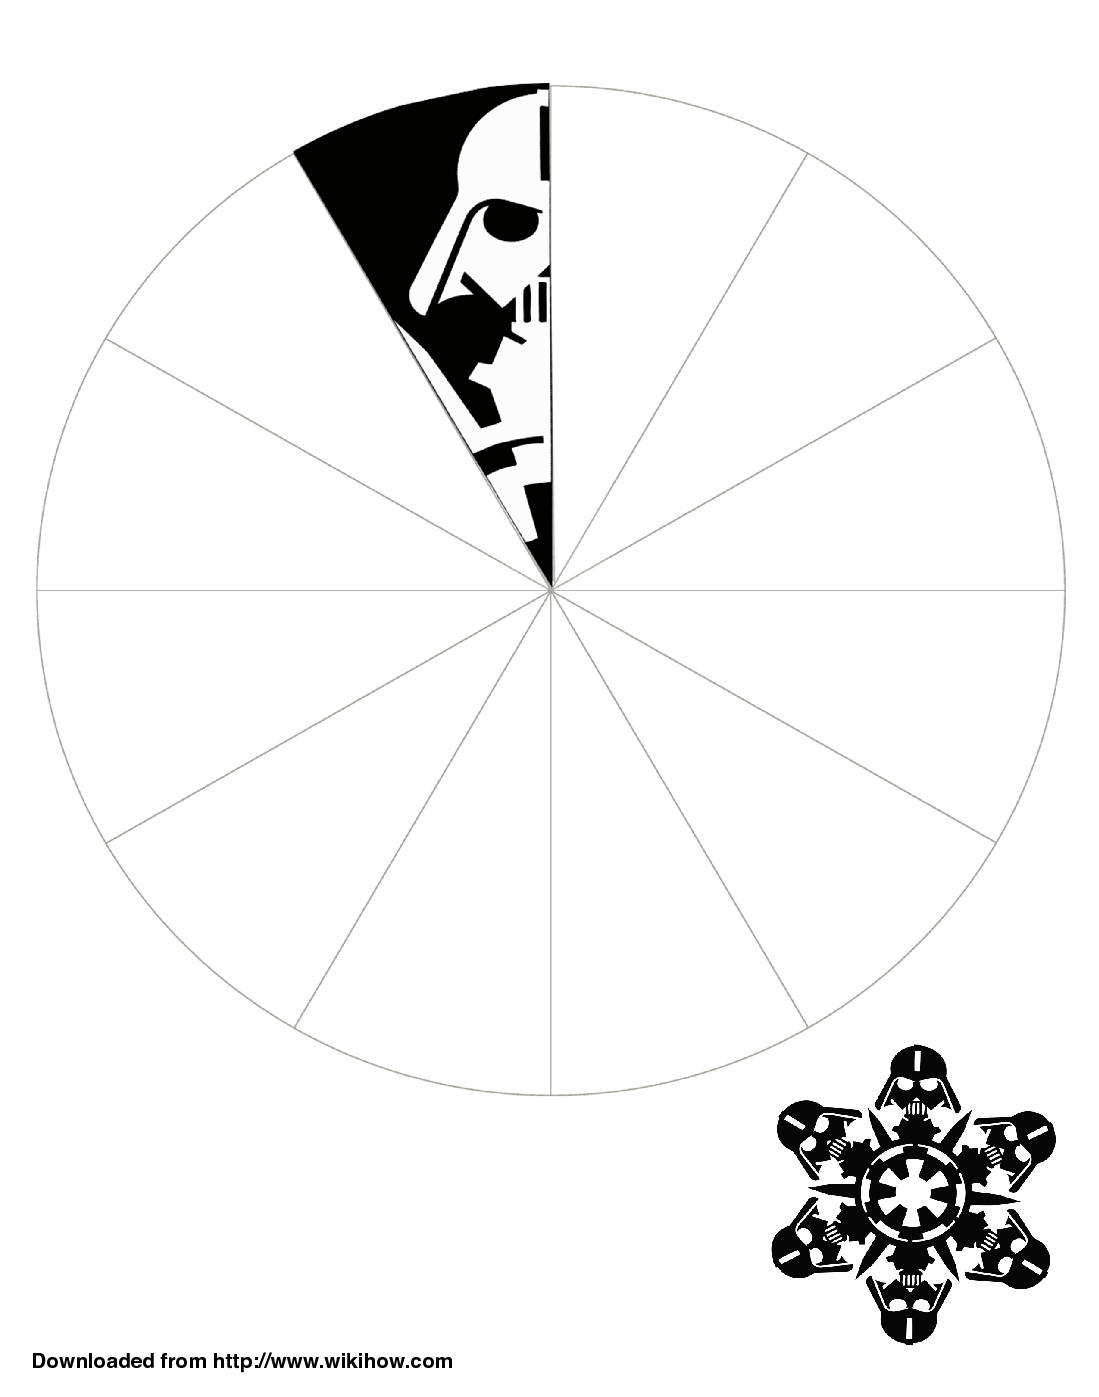 Printable Darth Vader Snowflake Template